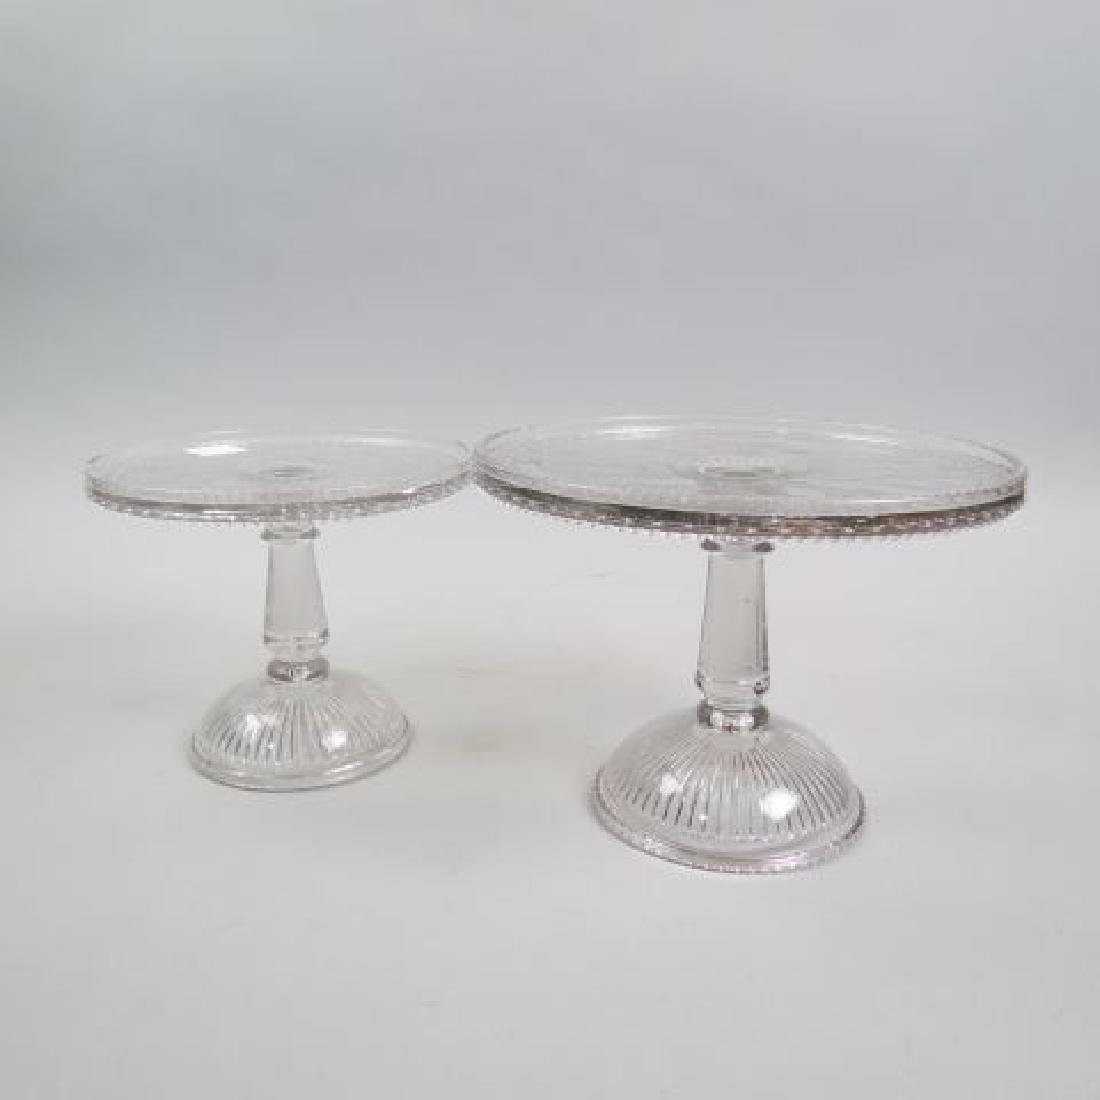 Two 19th Century Glass Cake or Dessert Stands,